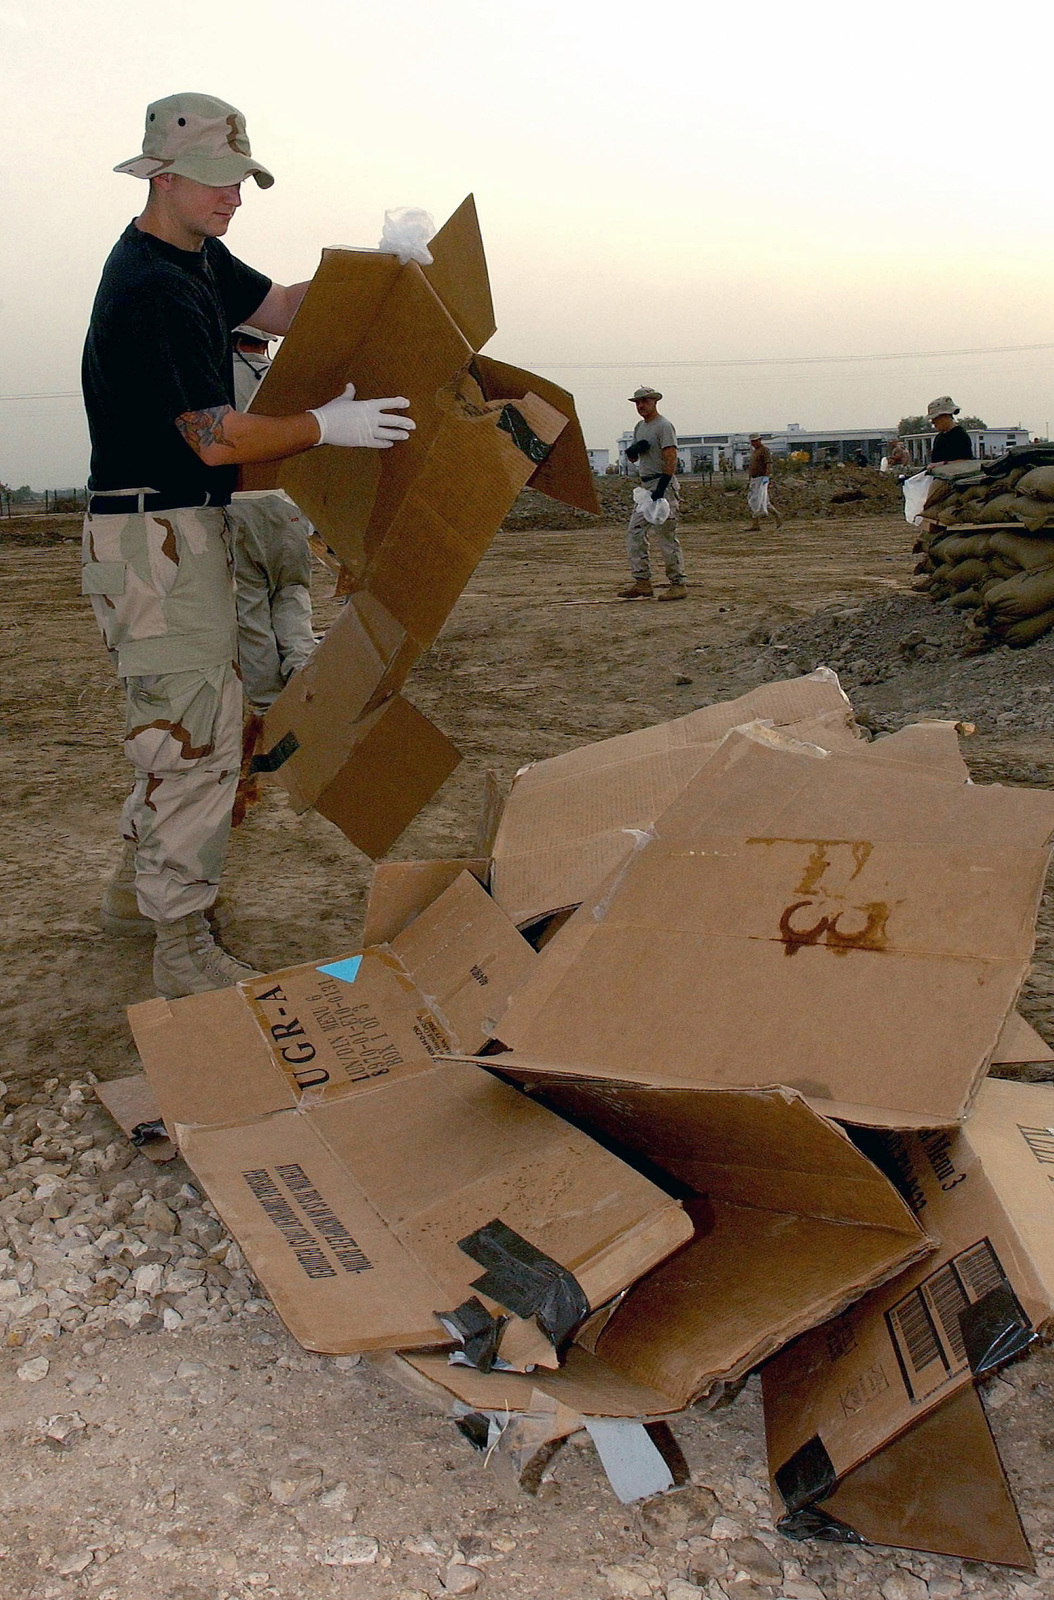 US Air Force (USAF) SENIOR AIRMAN (SRA) Bryan Stever, from the 11th Expeditionary Reconnaissance Squadron (ERS), piles cardboard debris into a centralized location during Operation Freedom Sweep at a forward deployed location (FDL) in support of Operation ENDURING FREEDOM